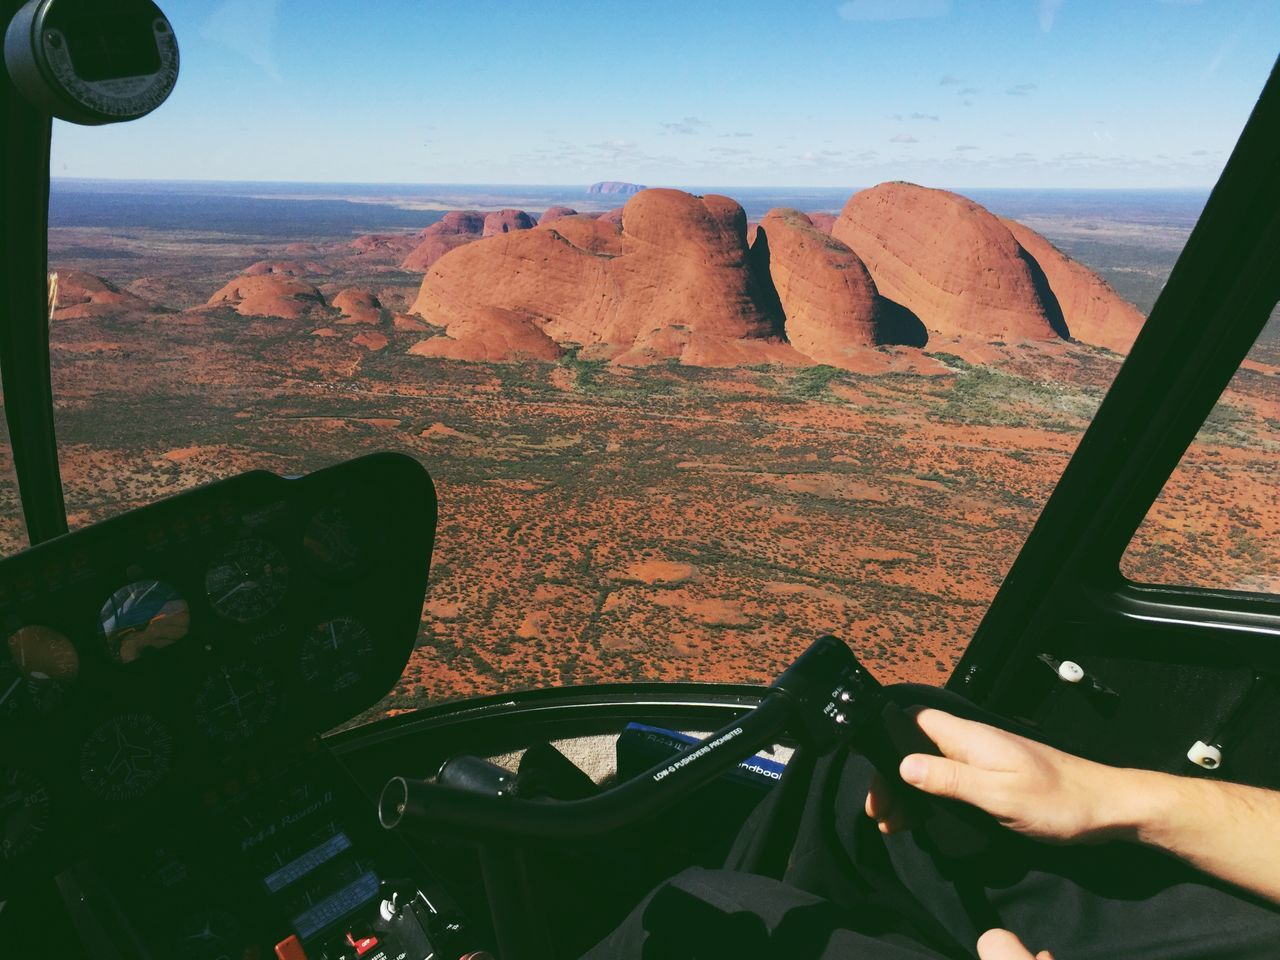 Midsection of pilot flying helicopter by kata tjuta against sky